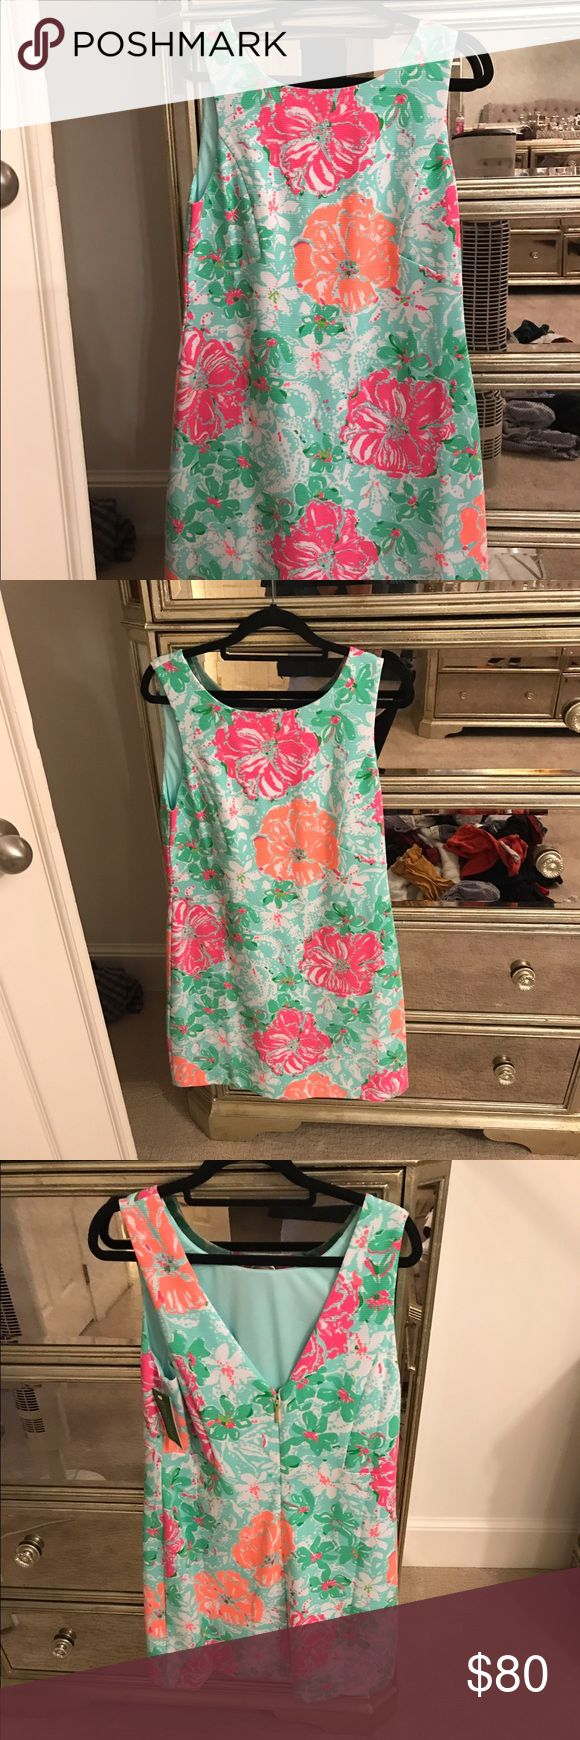 Lilly Pulitzer new with tags dress for sale! I have never worn this. I got this and then just change my mind after a while. The original cost is $178 + tax. Lilly Pulitzer Dresses Mini